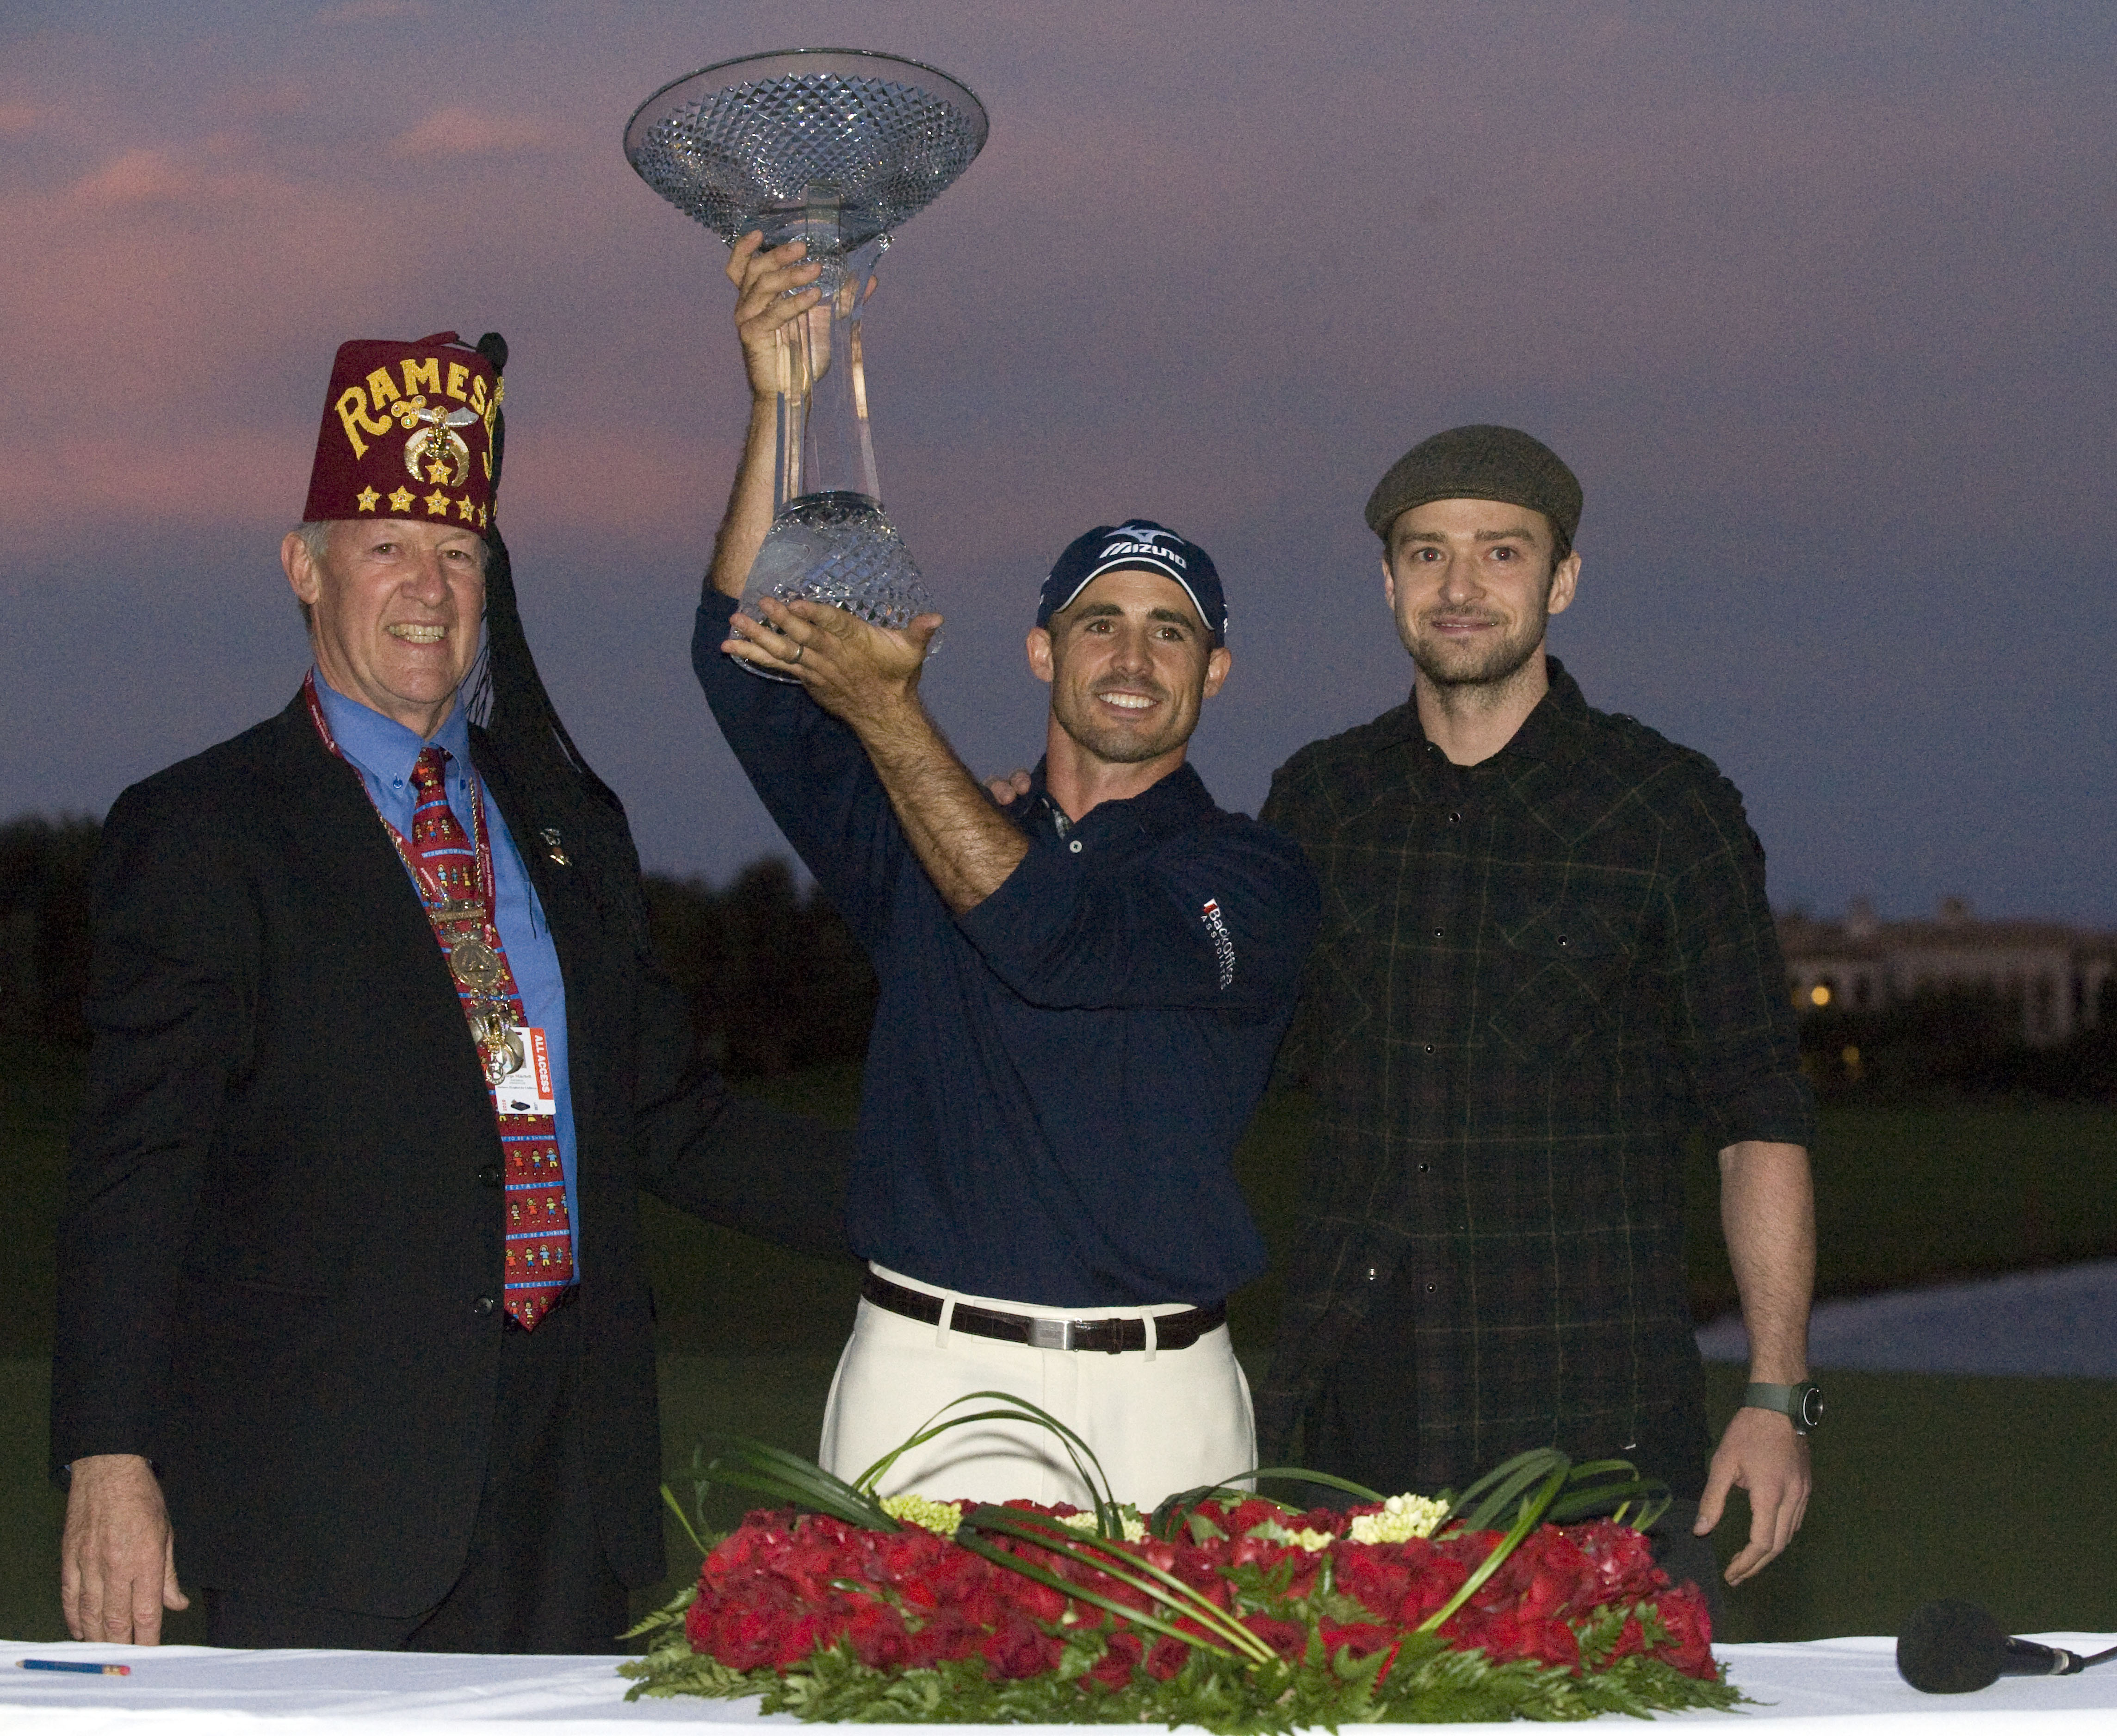 LAS VEGAS, NV - OCTOBER 24: (L - R) Shriner George Mitchell, golfer Jonathan Byrd and Justin Timberlake pose with the trophy after Byrd hit a hole-in-one to win the tournament at the Justin Timberlake Shriners Hospitals for Children Open at TPC Sunderlin